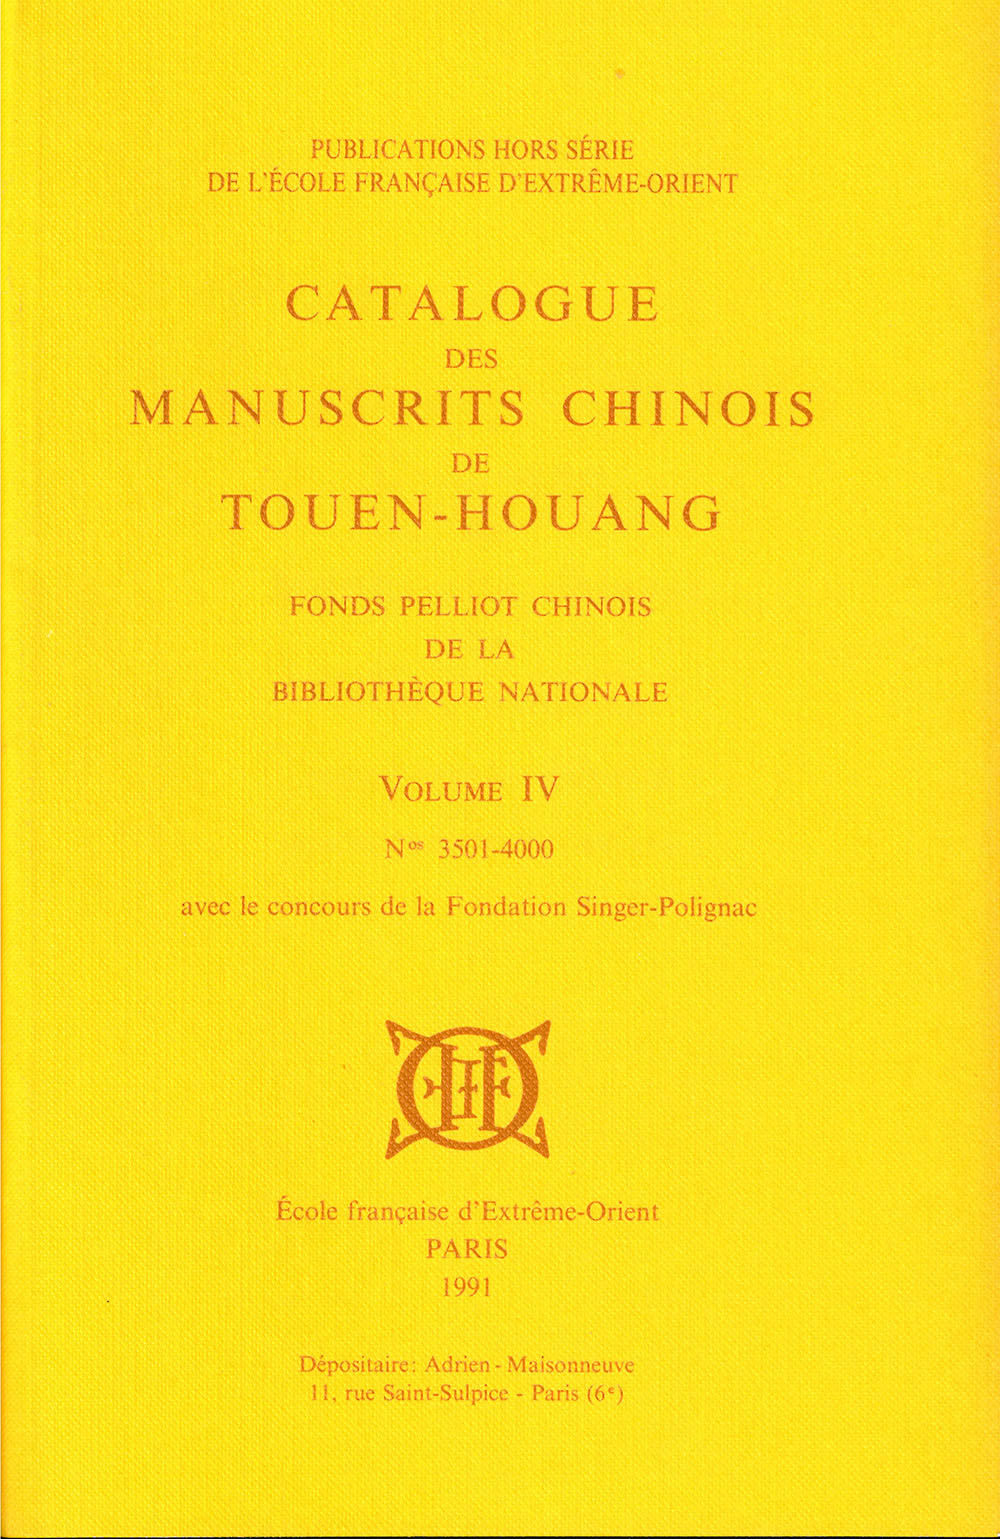 Catalogue des manuscrits chinois de Touen-Houang. Volume IV (n° 3501-4000)